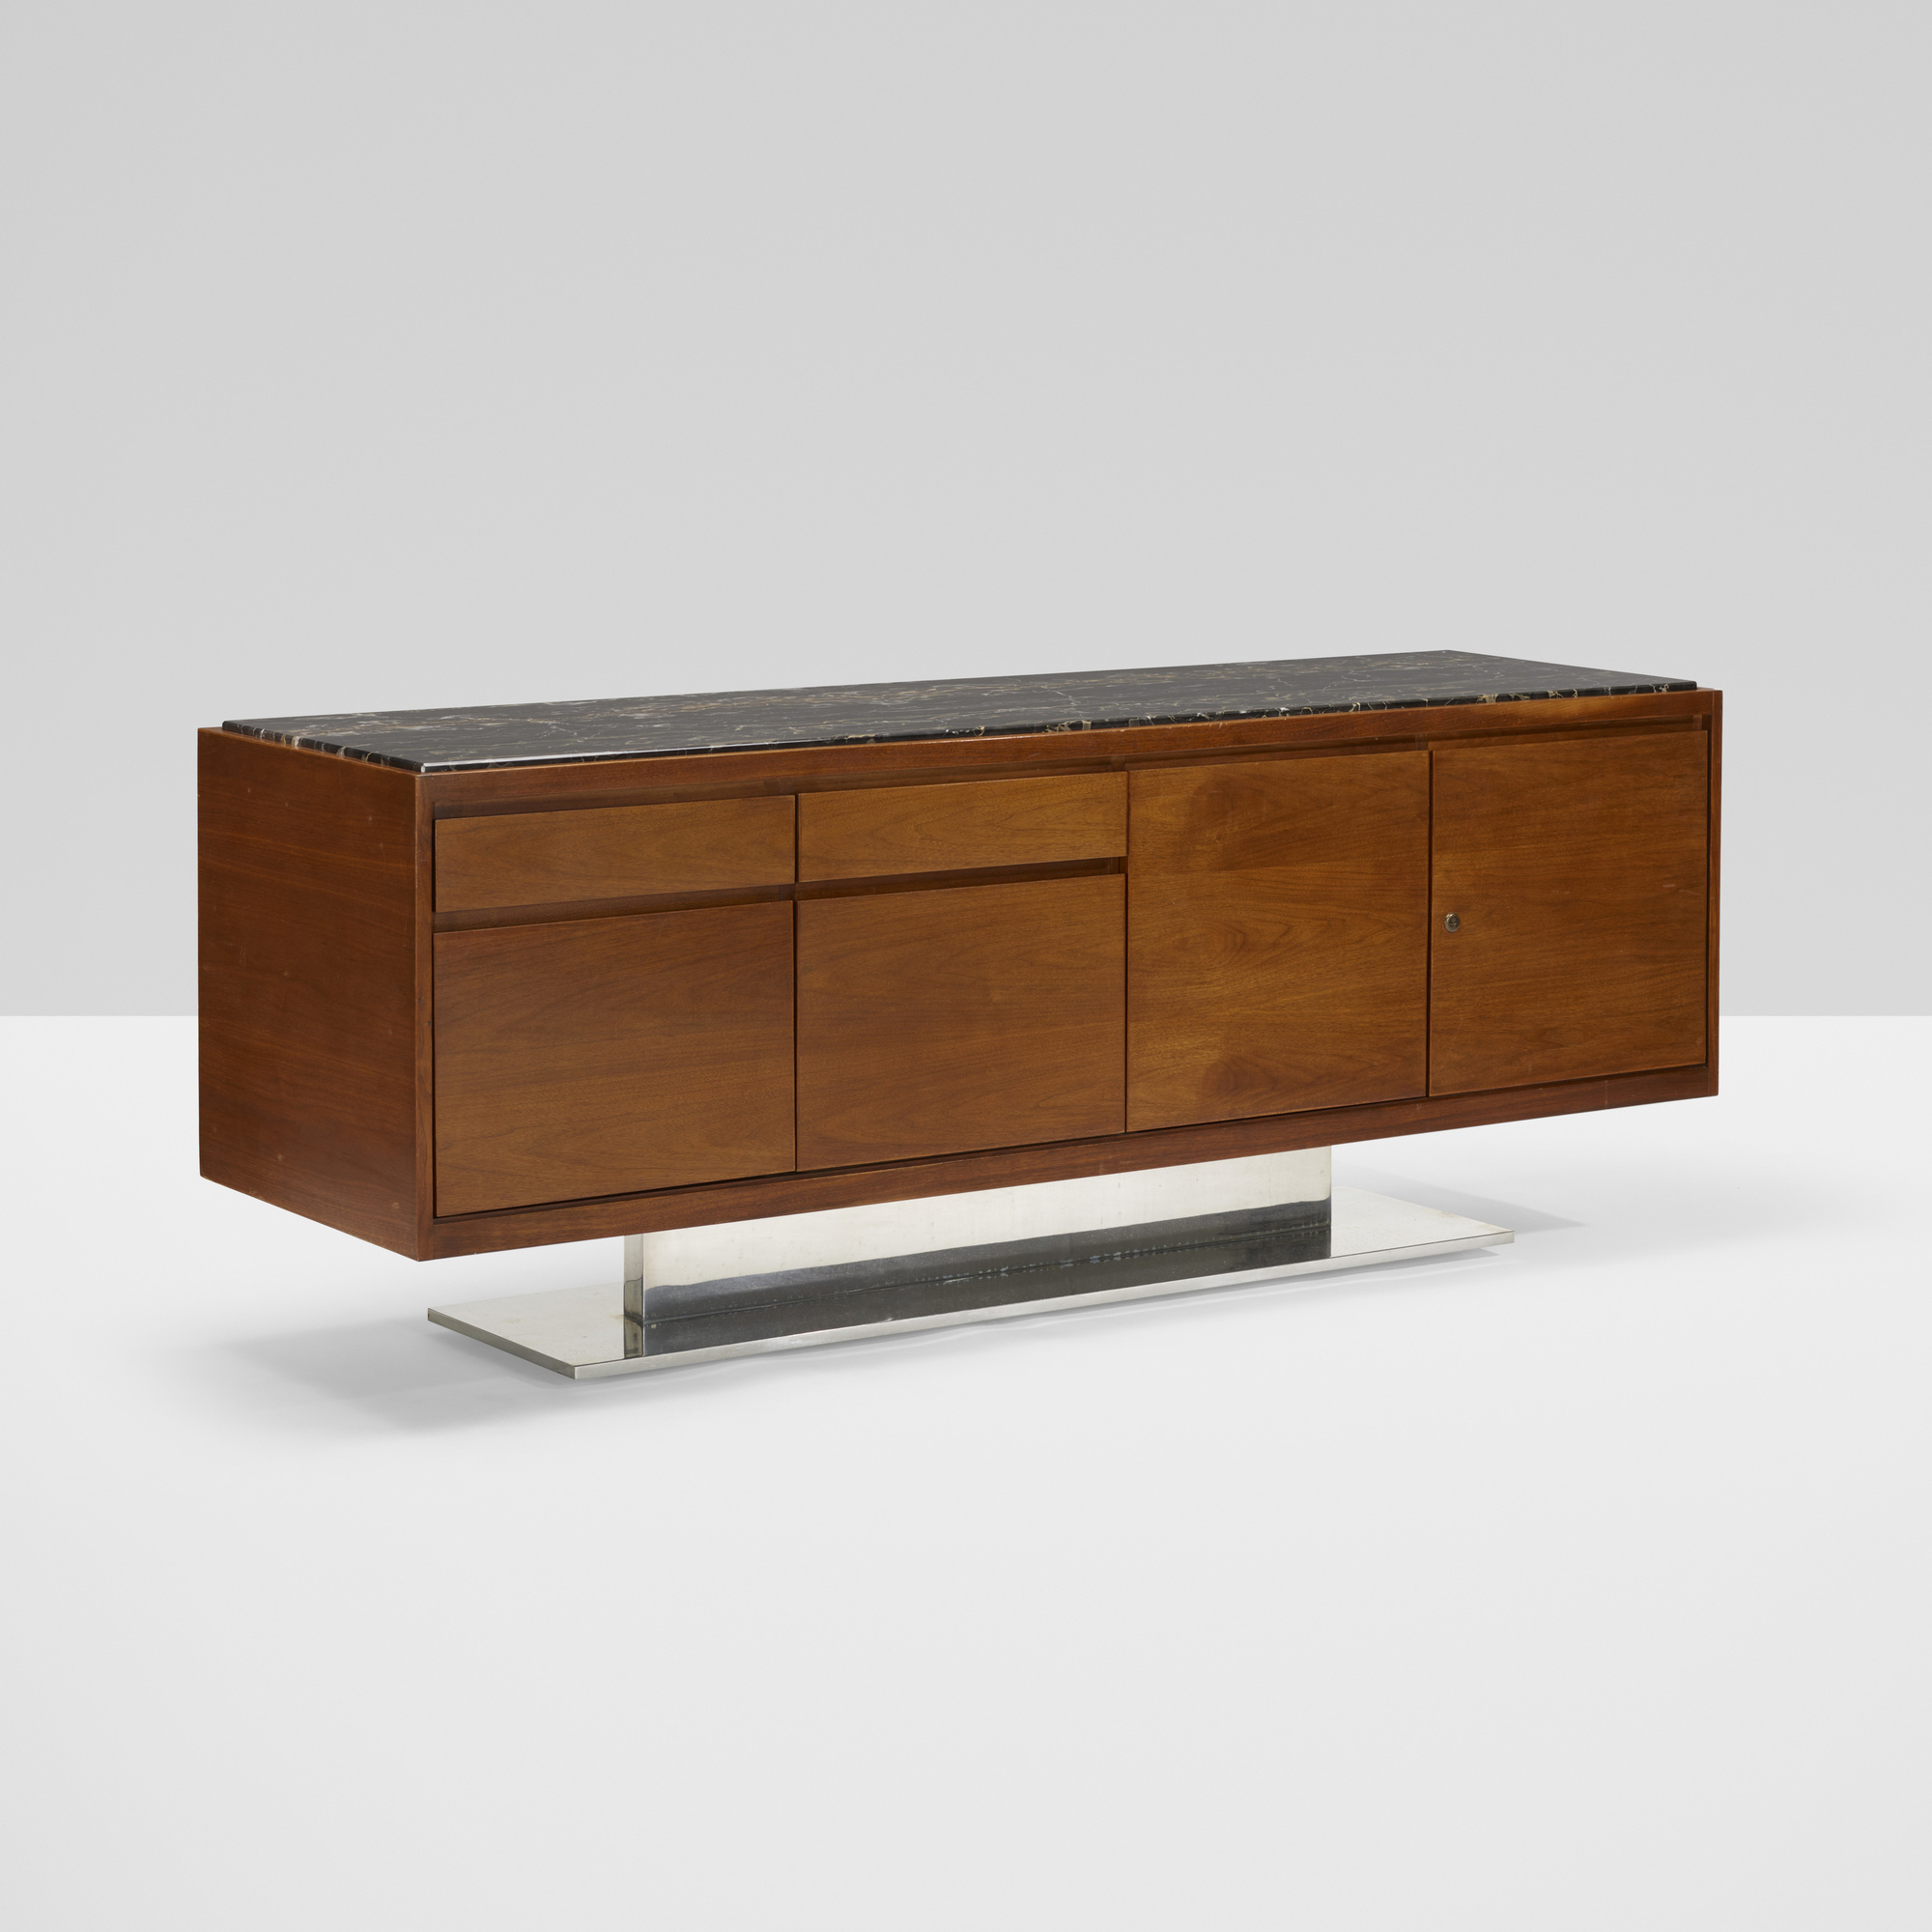 314: Warren Platner / cabinet (1 of 2)